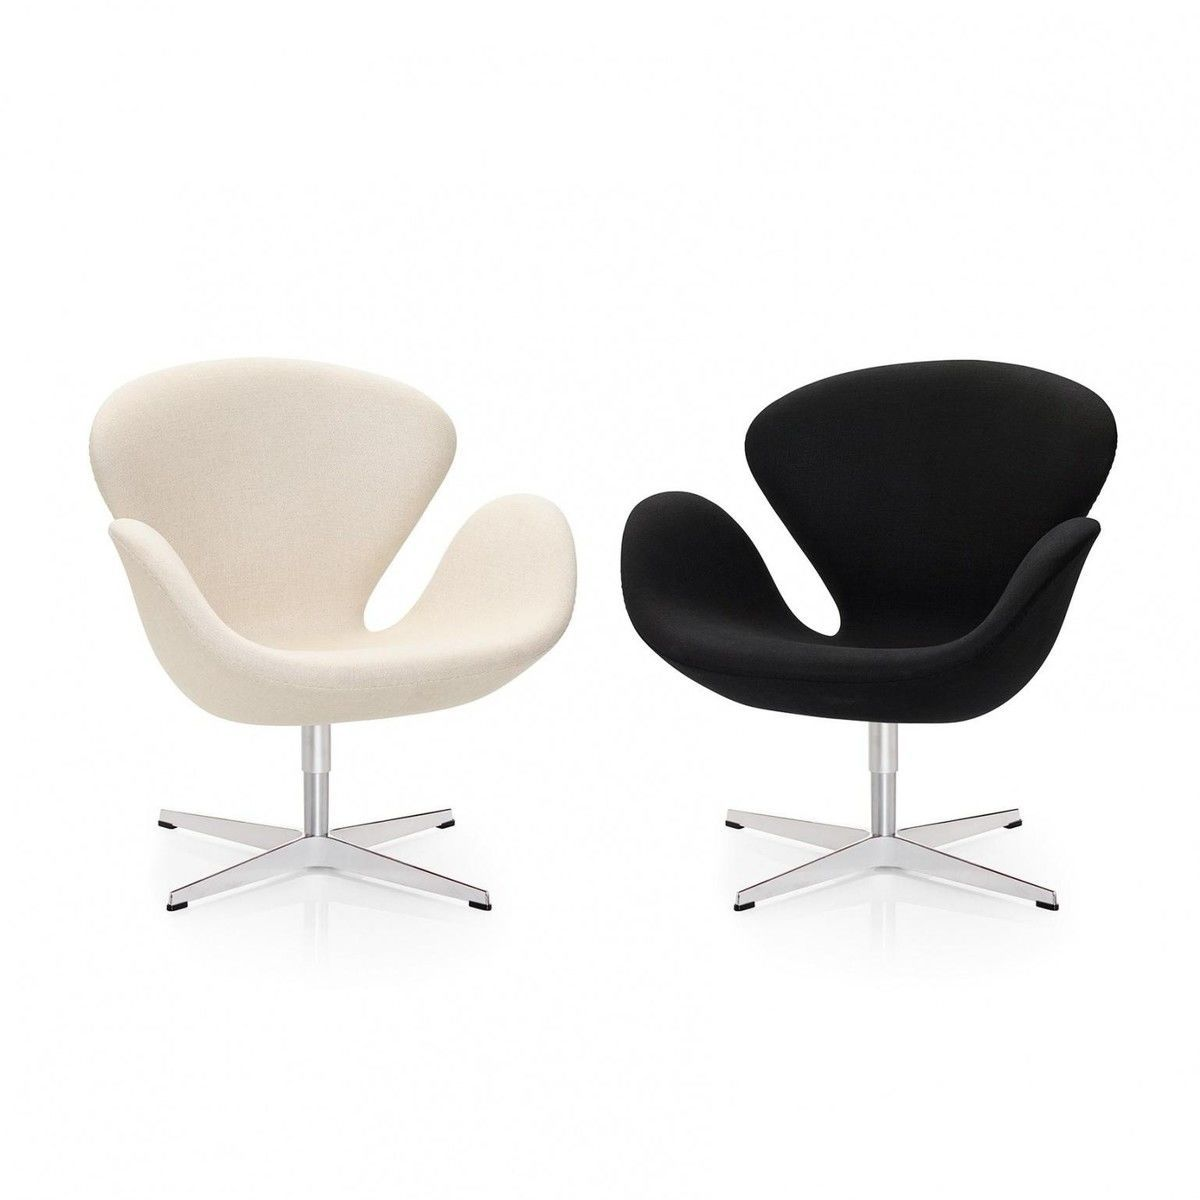 swan chair sessel stoff fritz hansen. Black Bedroom Furniture Sets. Home Design Ideas